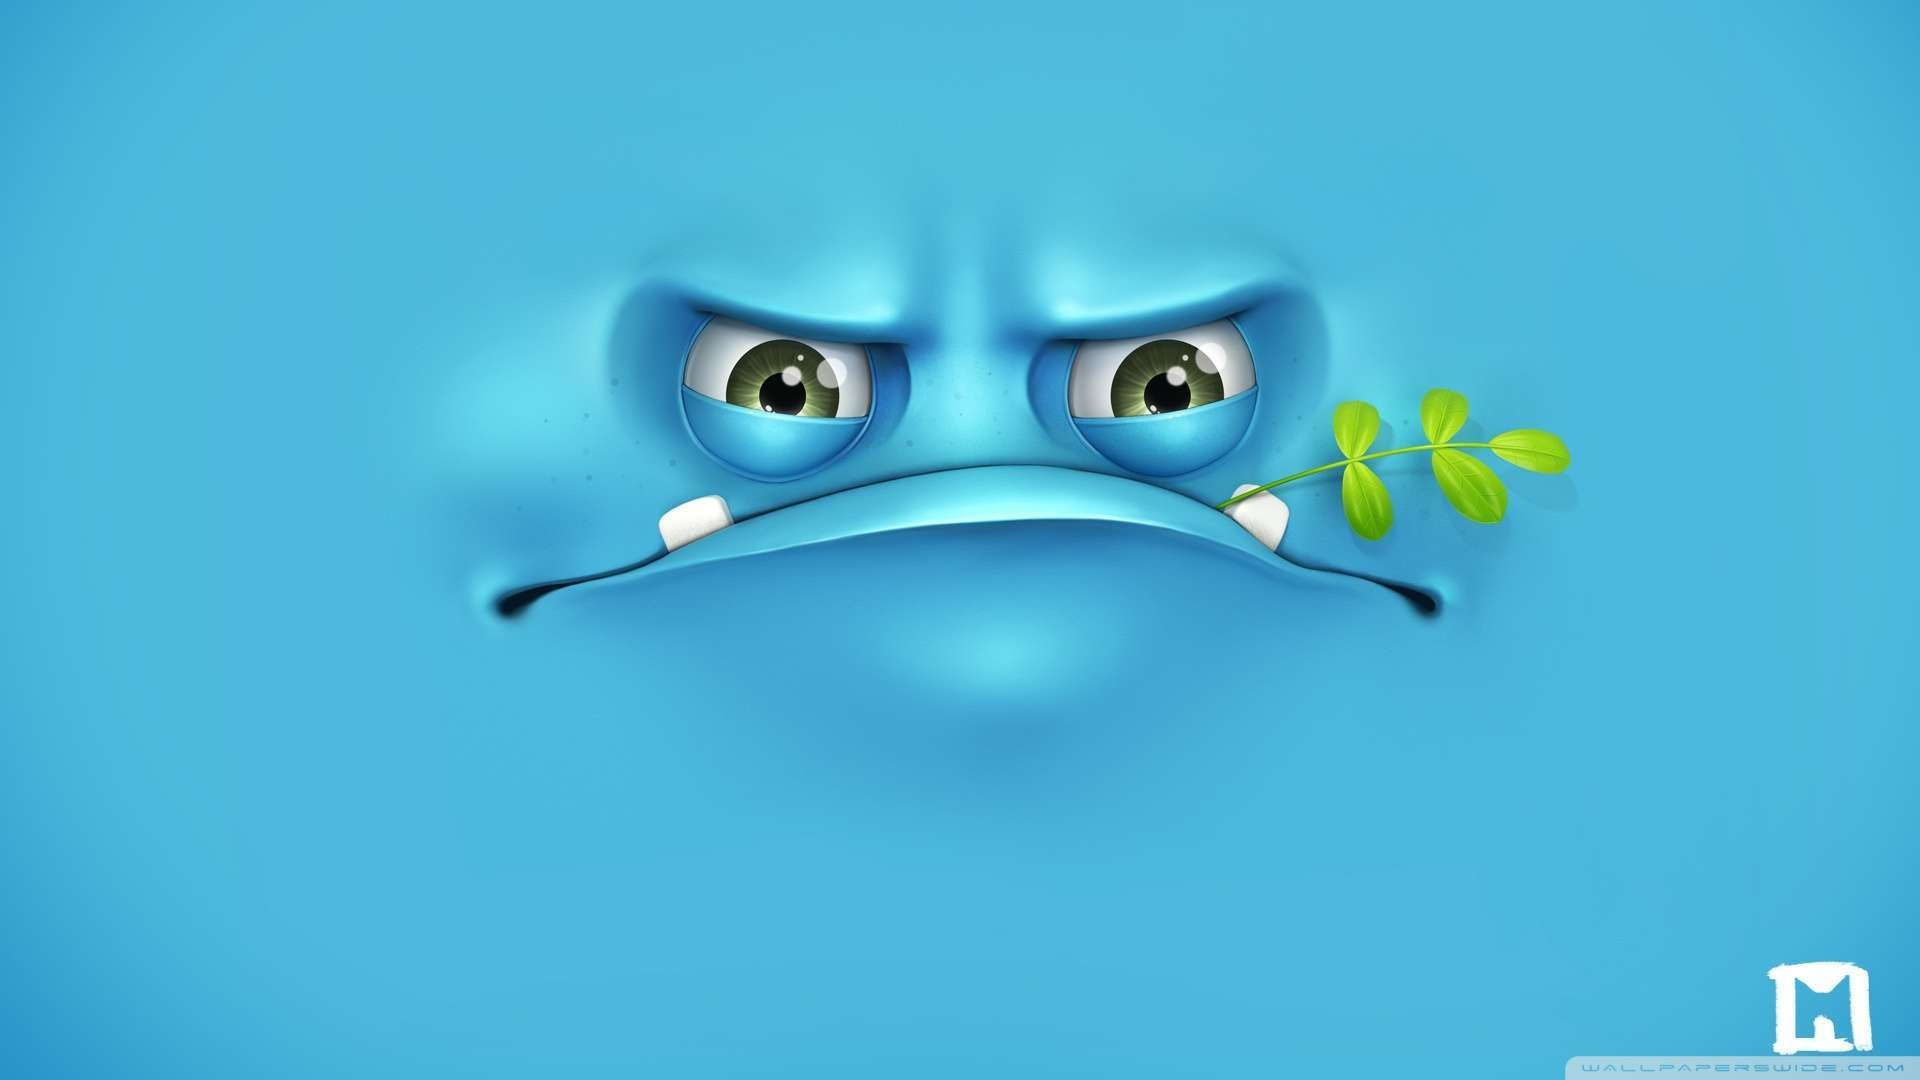 1920x1080 HD funny hd wallpapers 1080p For Windows Wallpaper Themes with funny hd  wallpapers 1080p Download HD